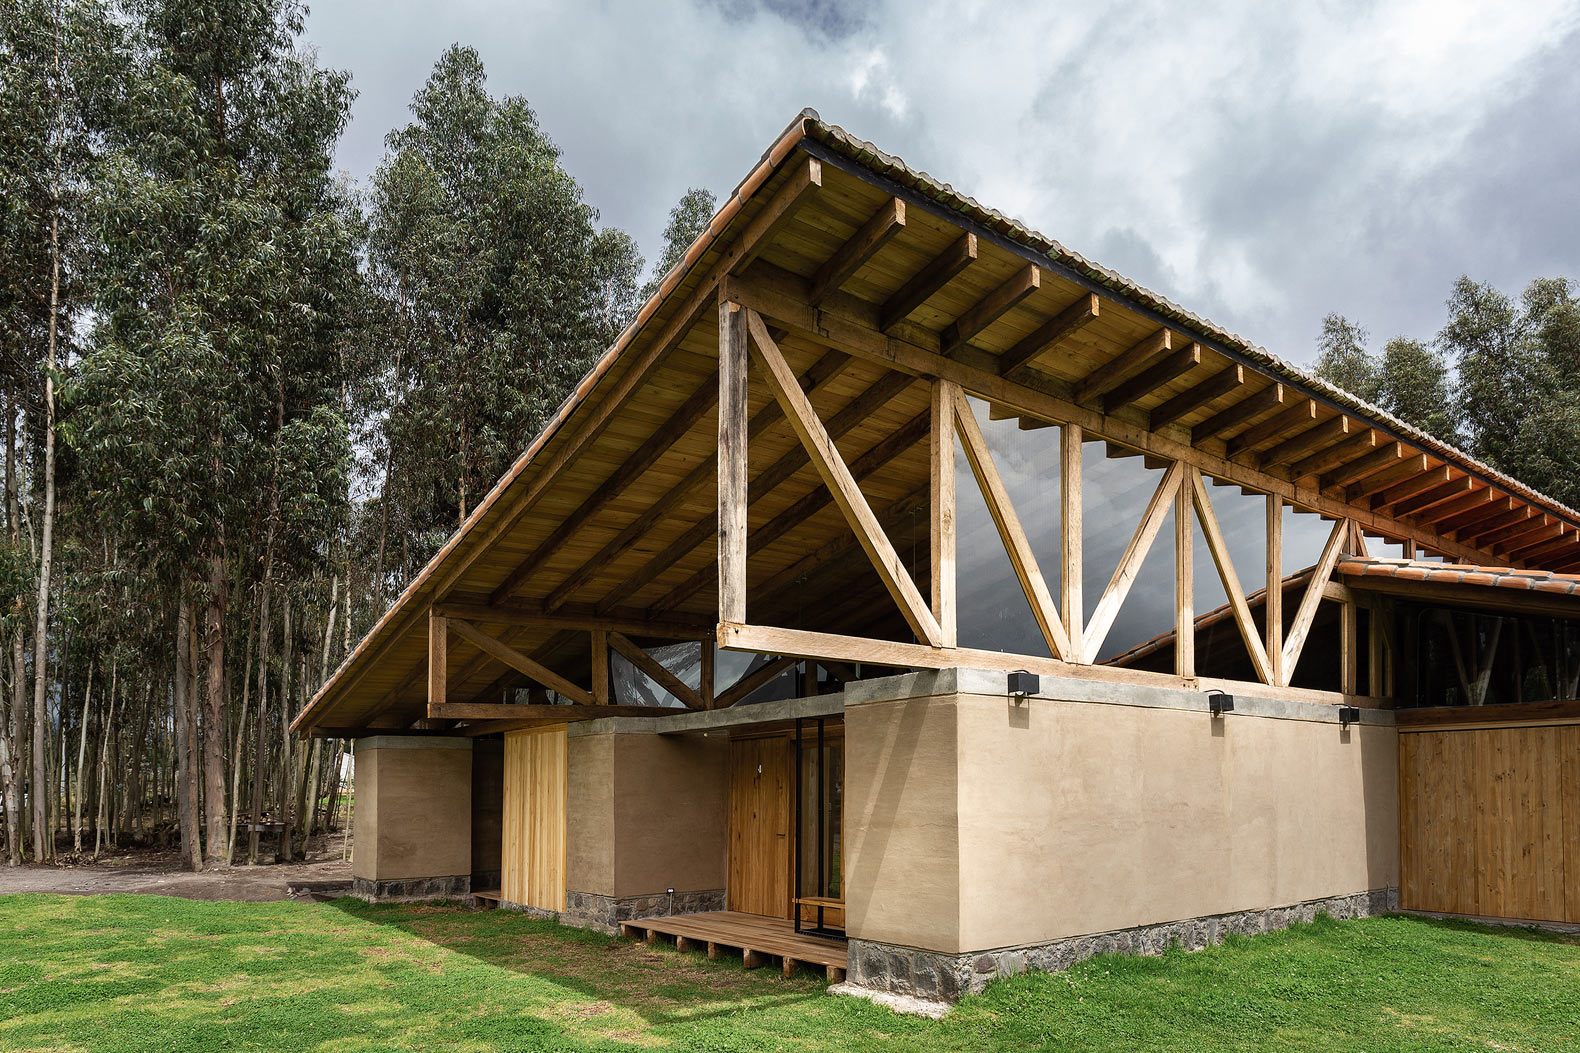 This Ecuadorian home uses the natural elements of rammed earth as a foundation